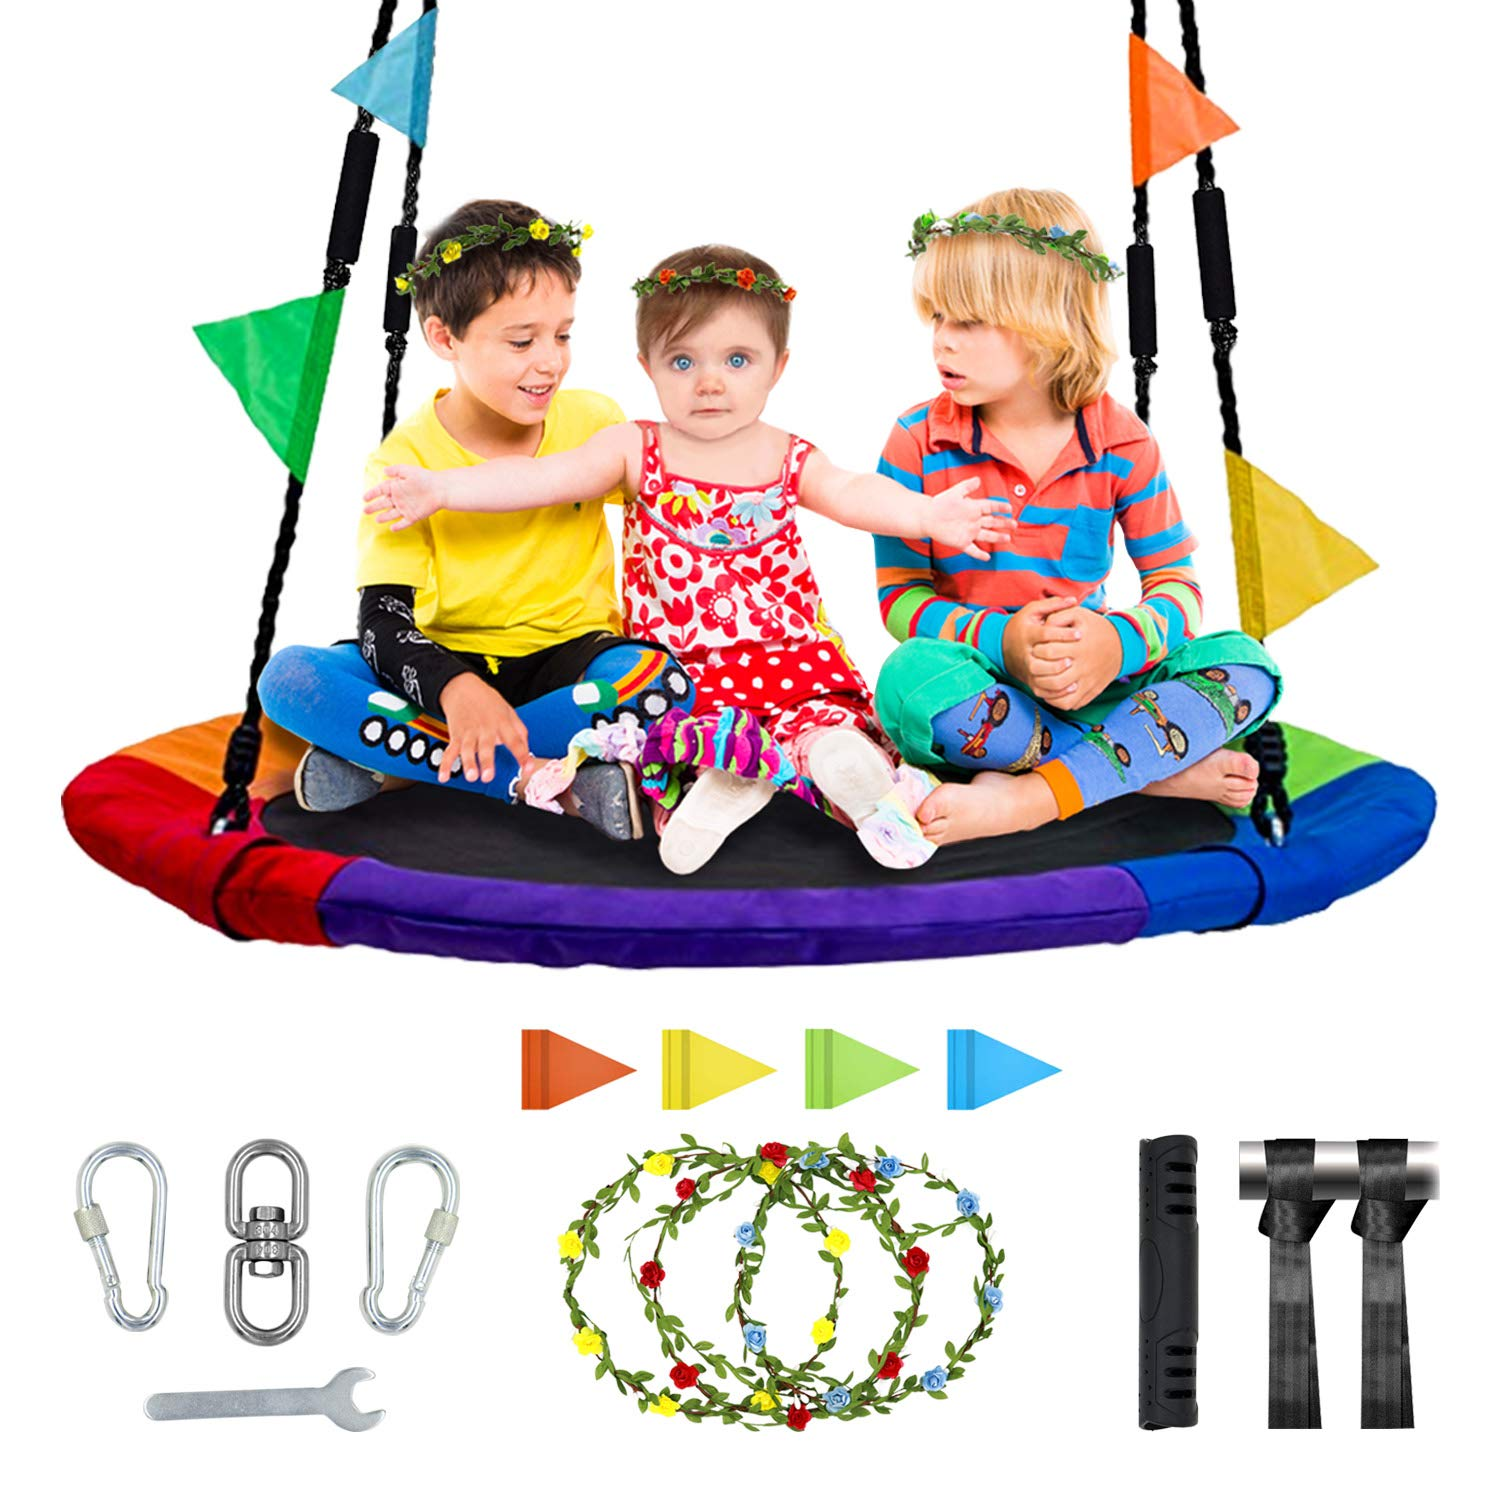 MESIXI Flying Saucer Round Tree Swing (40 inches), Outdoor Parent-Child Camping Toys, 900D Oxford Cloth Material Contains Abundant Accessories, Waterproof and Safe. by MESIXI